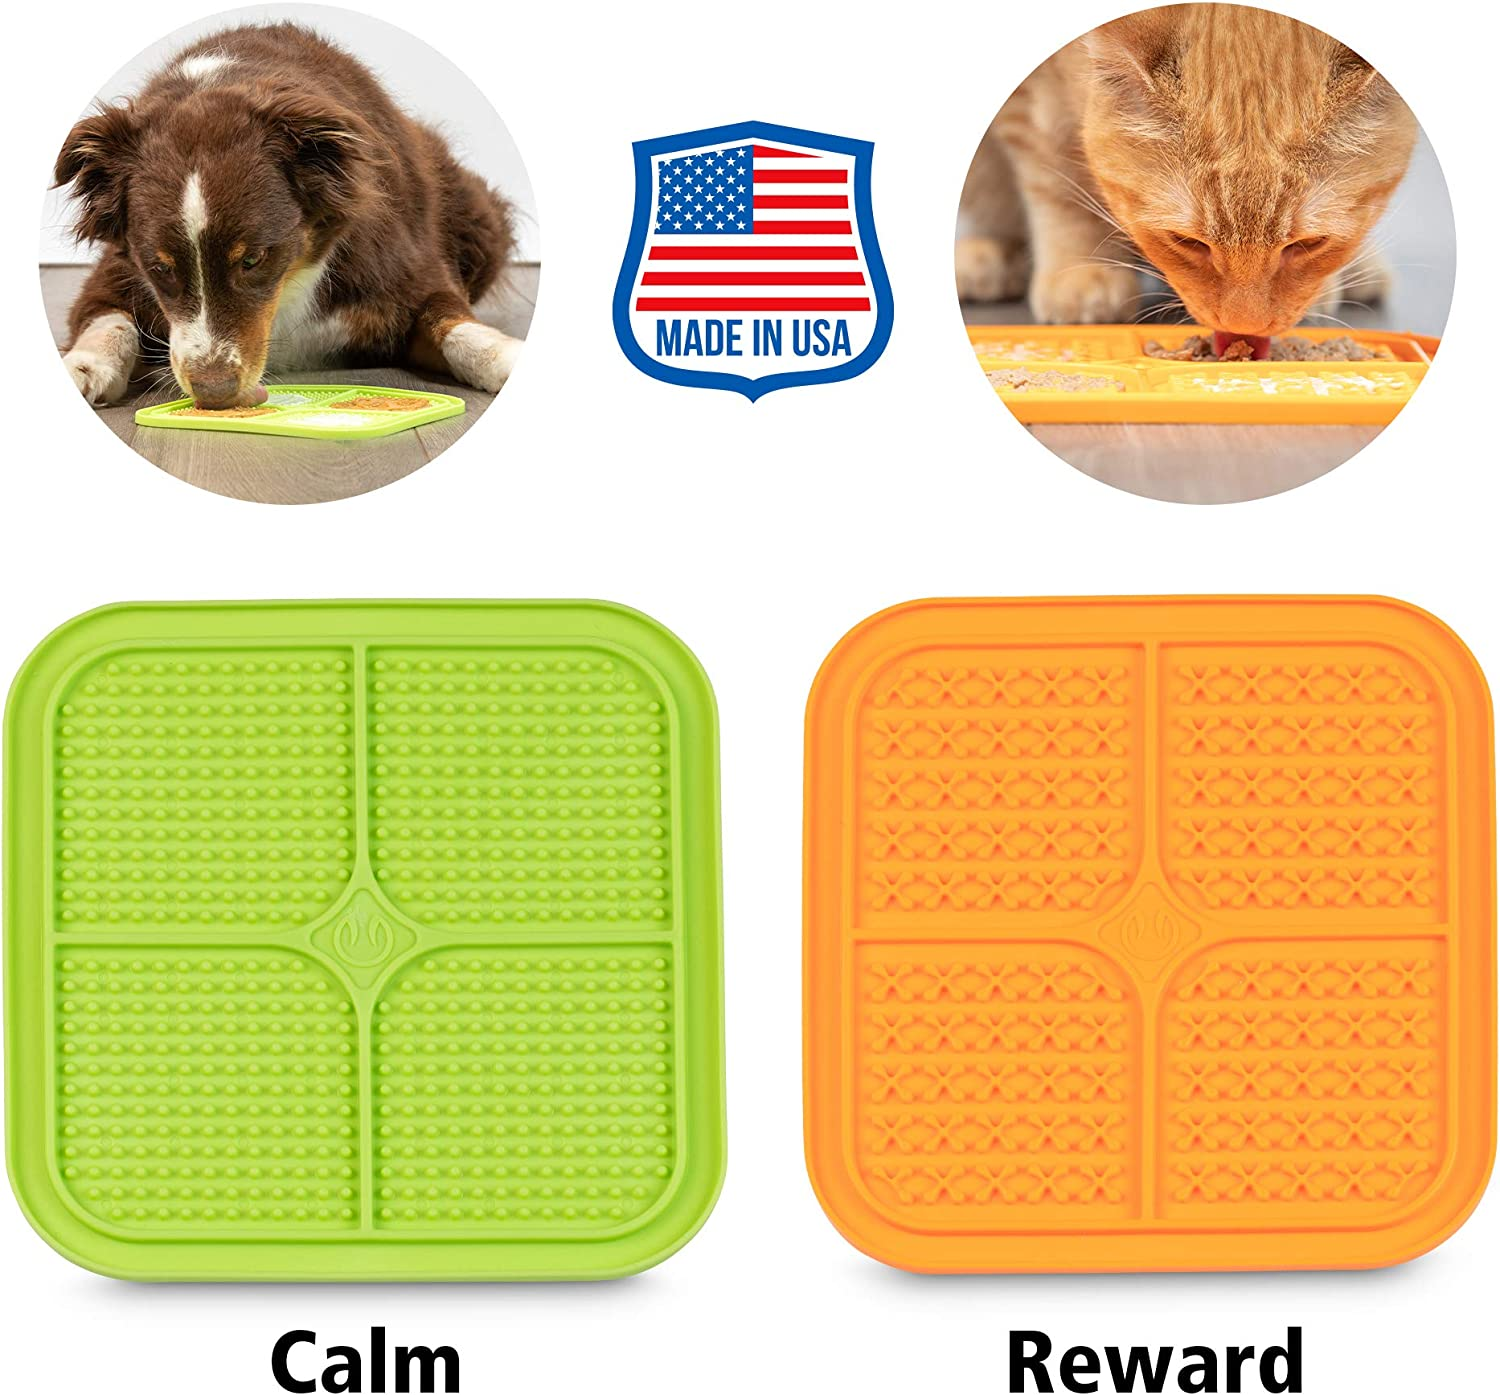 Hyper Pet Licking Mat for Dogs & Cats (New Version, IQ Treat Mat) | Made in U.S. | Fun Alternative to Slow Feeder Dog Bowls, Calming Mat for Anxiety Relief, Boredom Buster | Just Add Healthy Treats